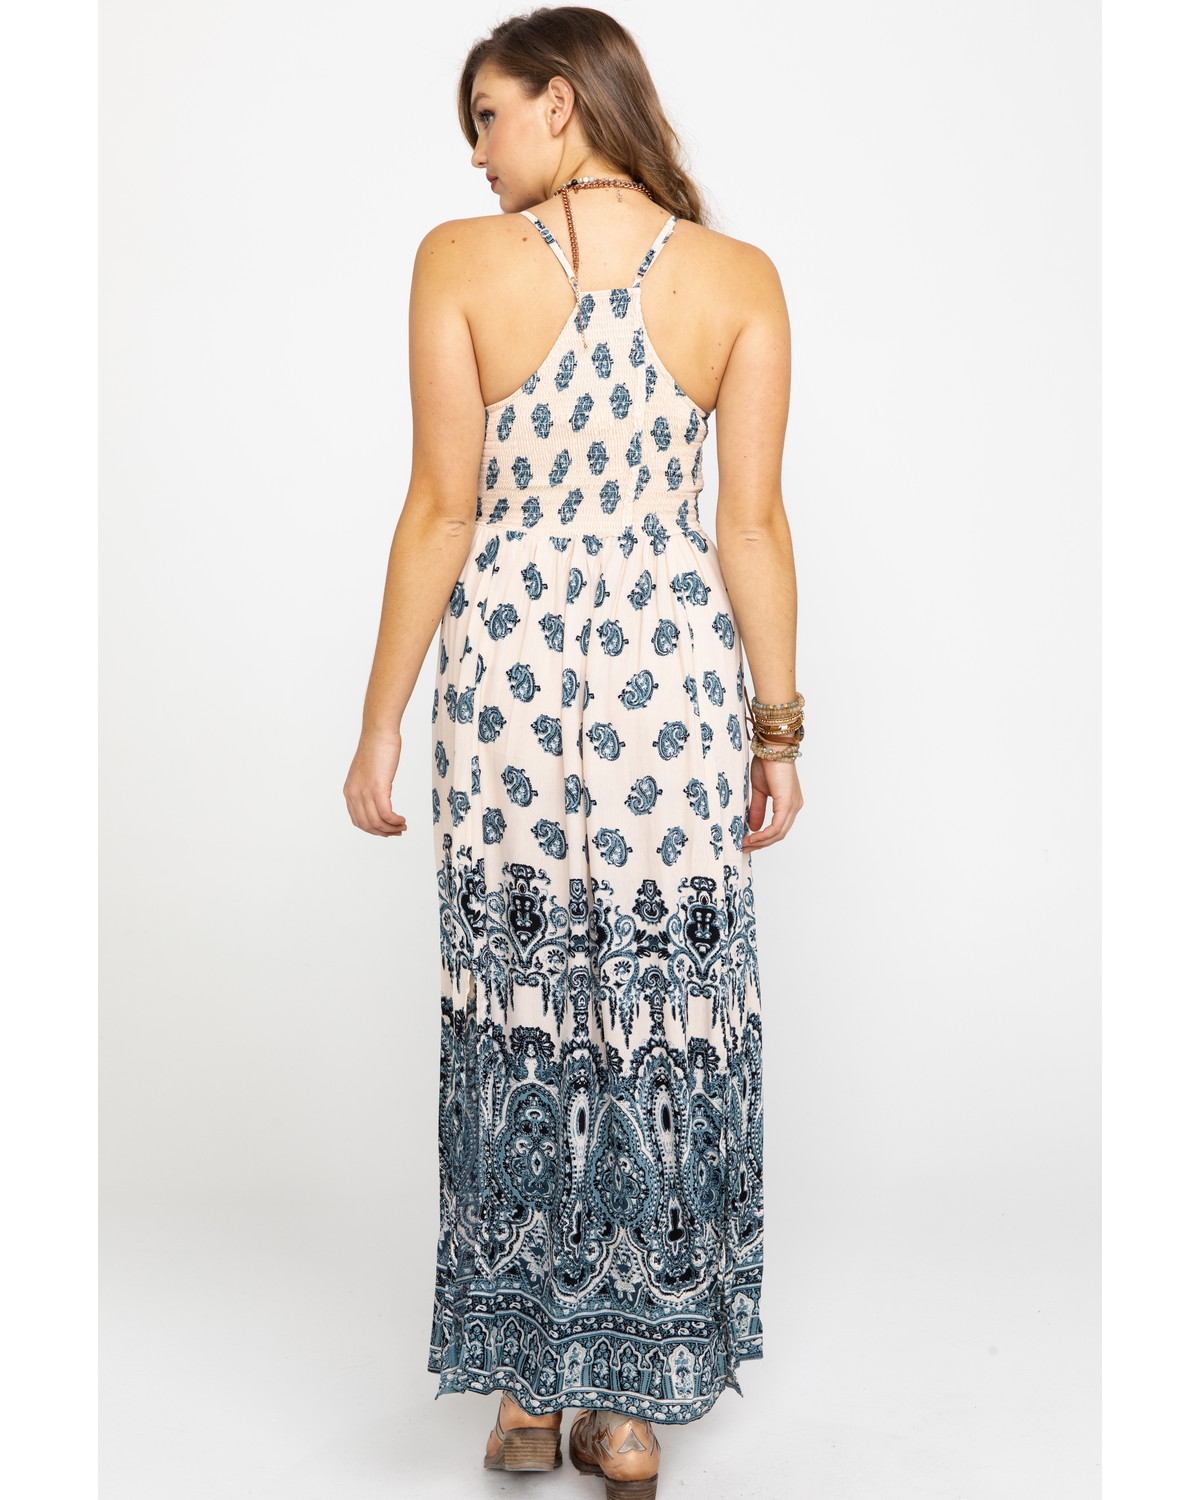 0d3b0fd7e7f Angie Women s Cream   Blue Paisley Print Maxi Dress - Country Outfitter